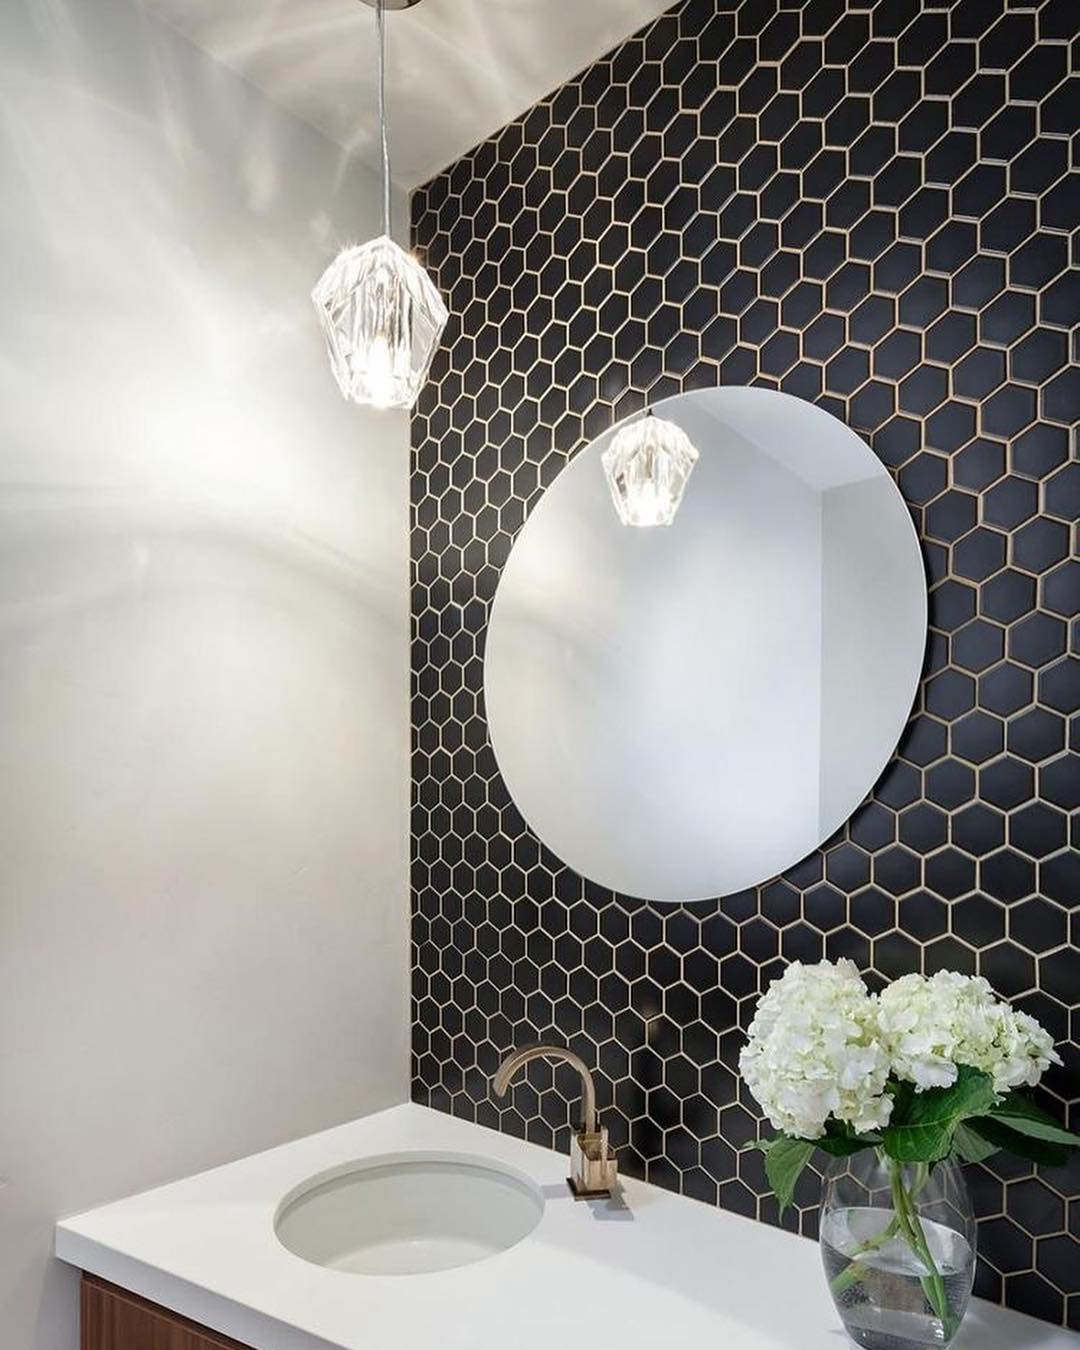 Bathroom decoration 2019 (15)